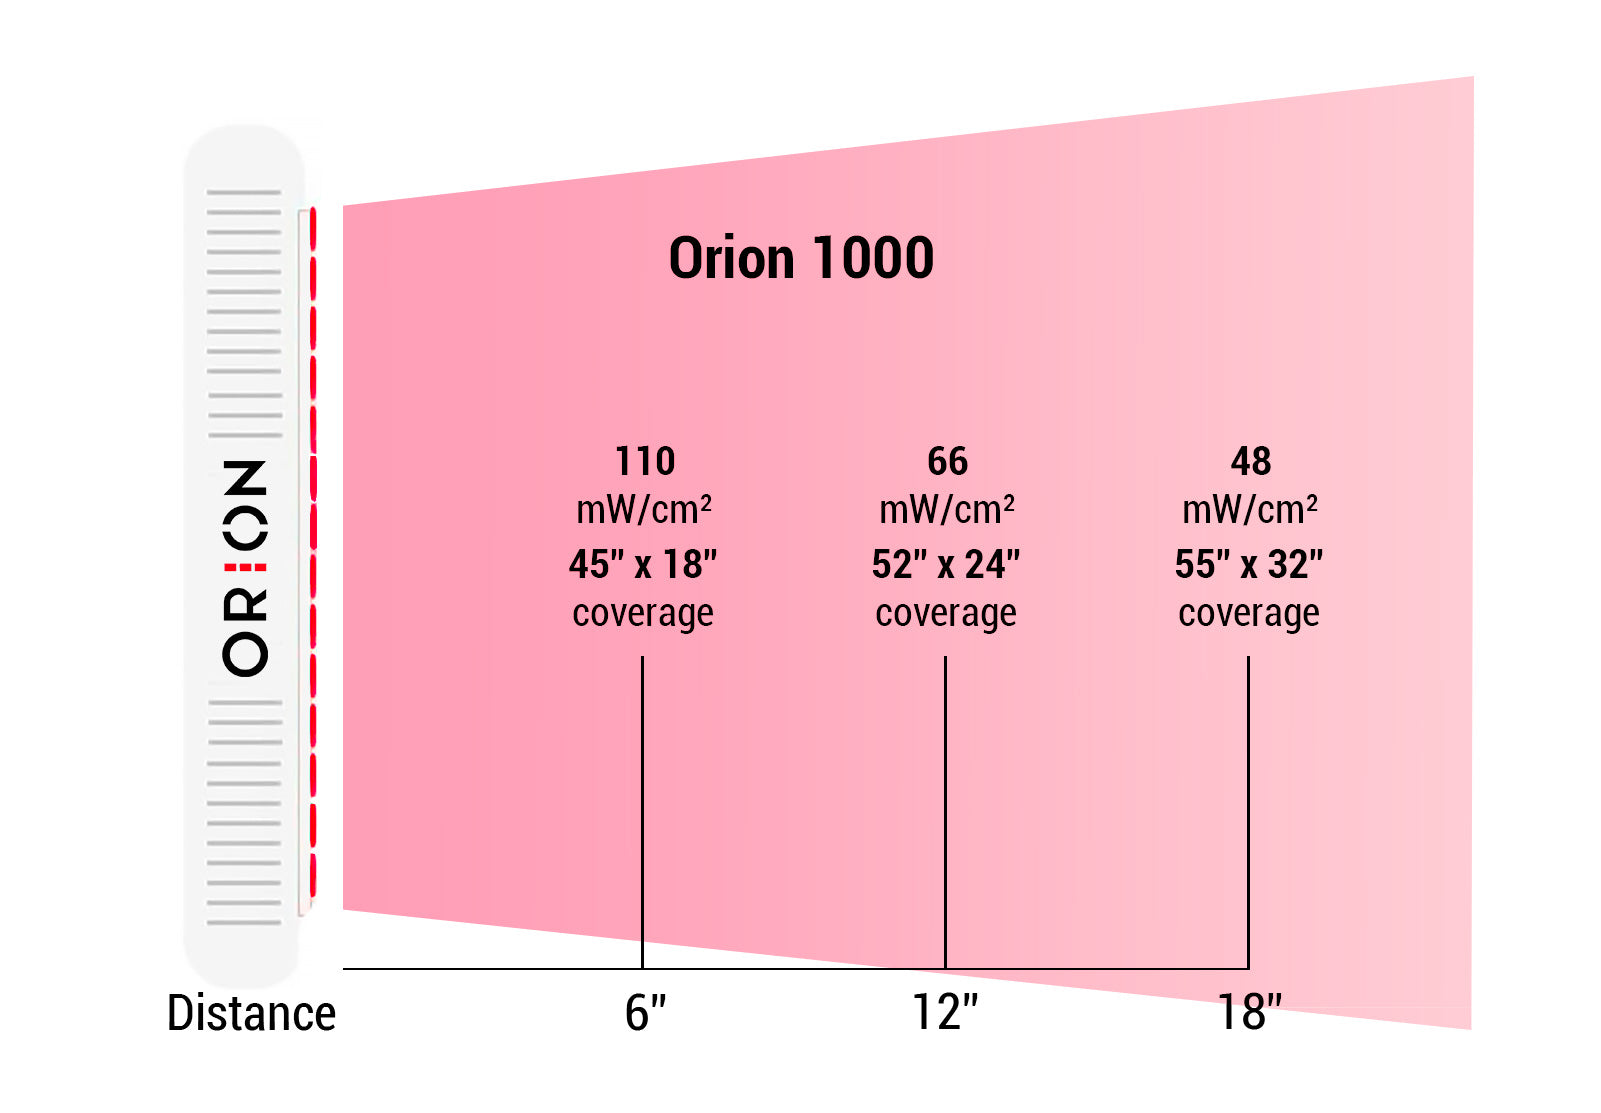 Orion 1000 Irradiance levels   Orion Red Light Therapy